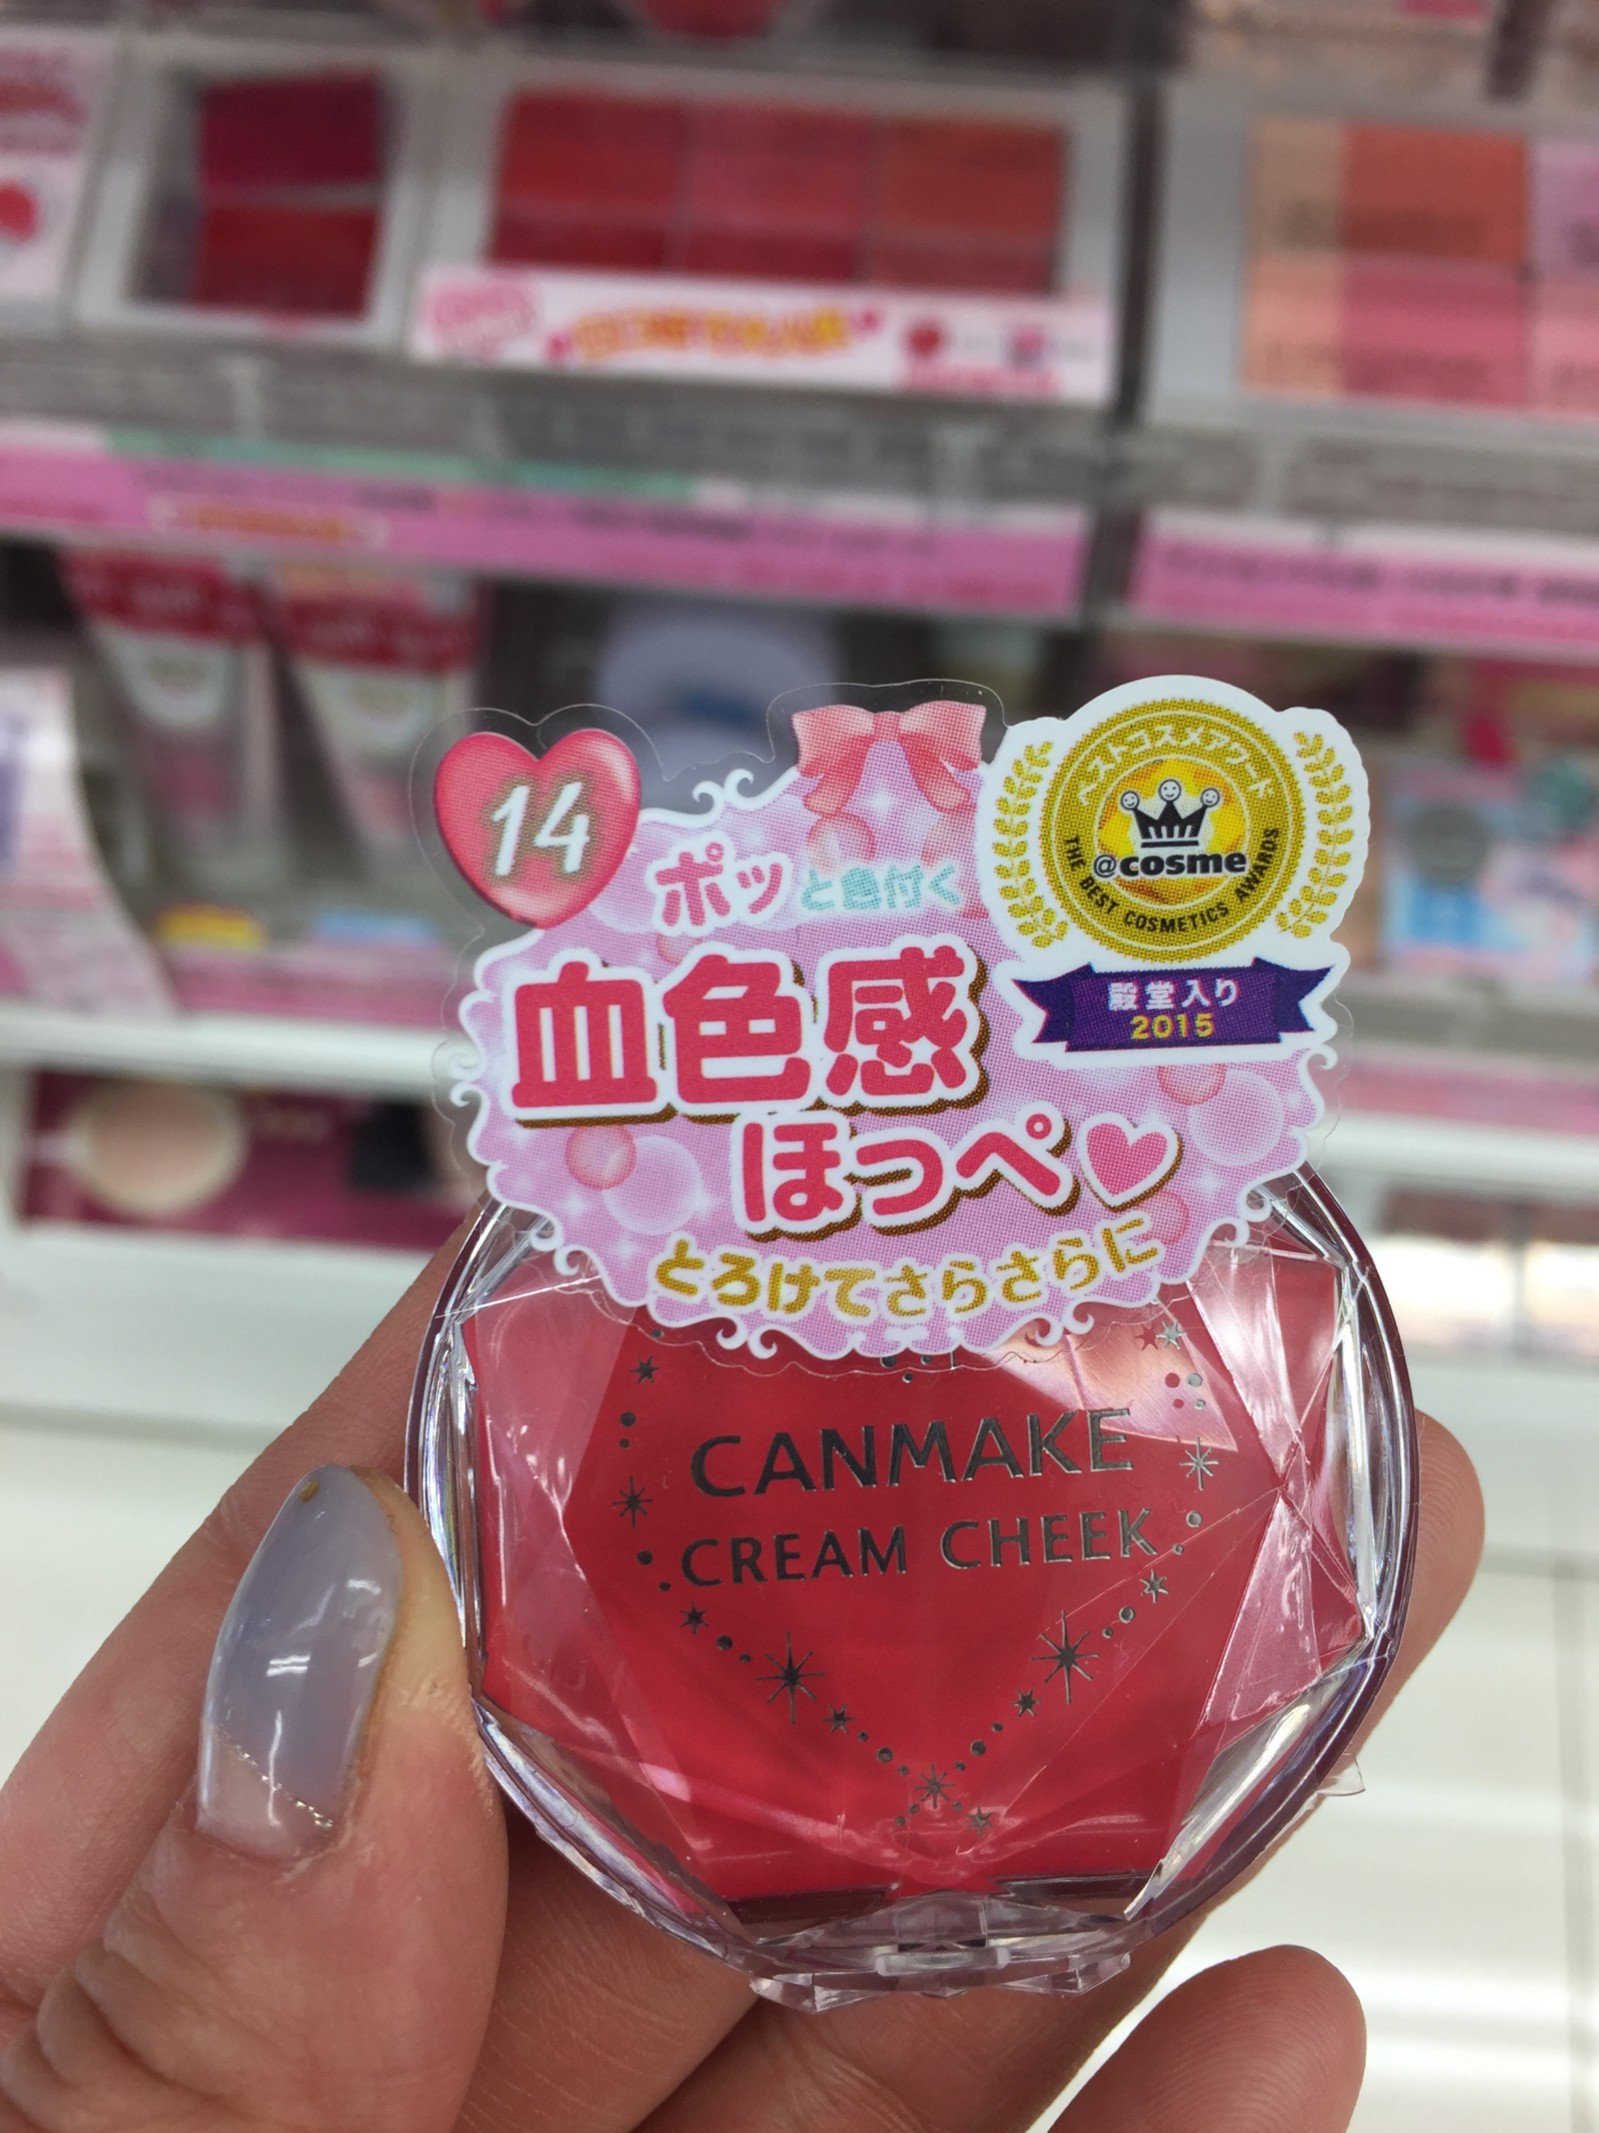 Best Drugstore Blush: CANMAKE Cream Cheek